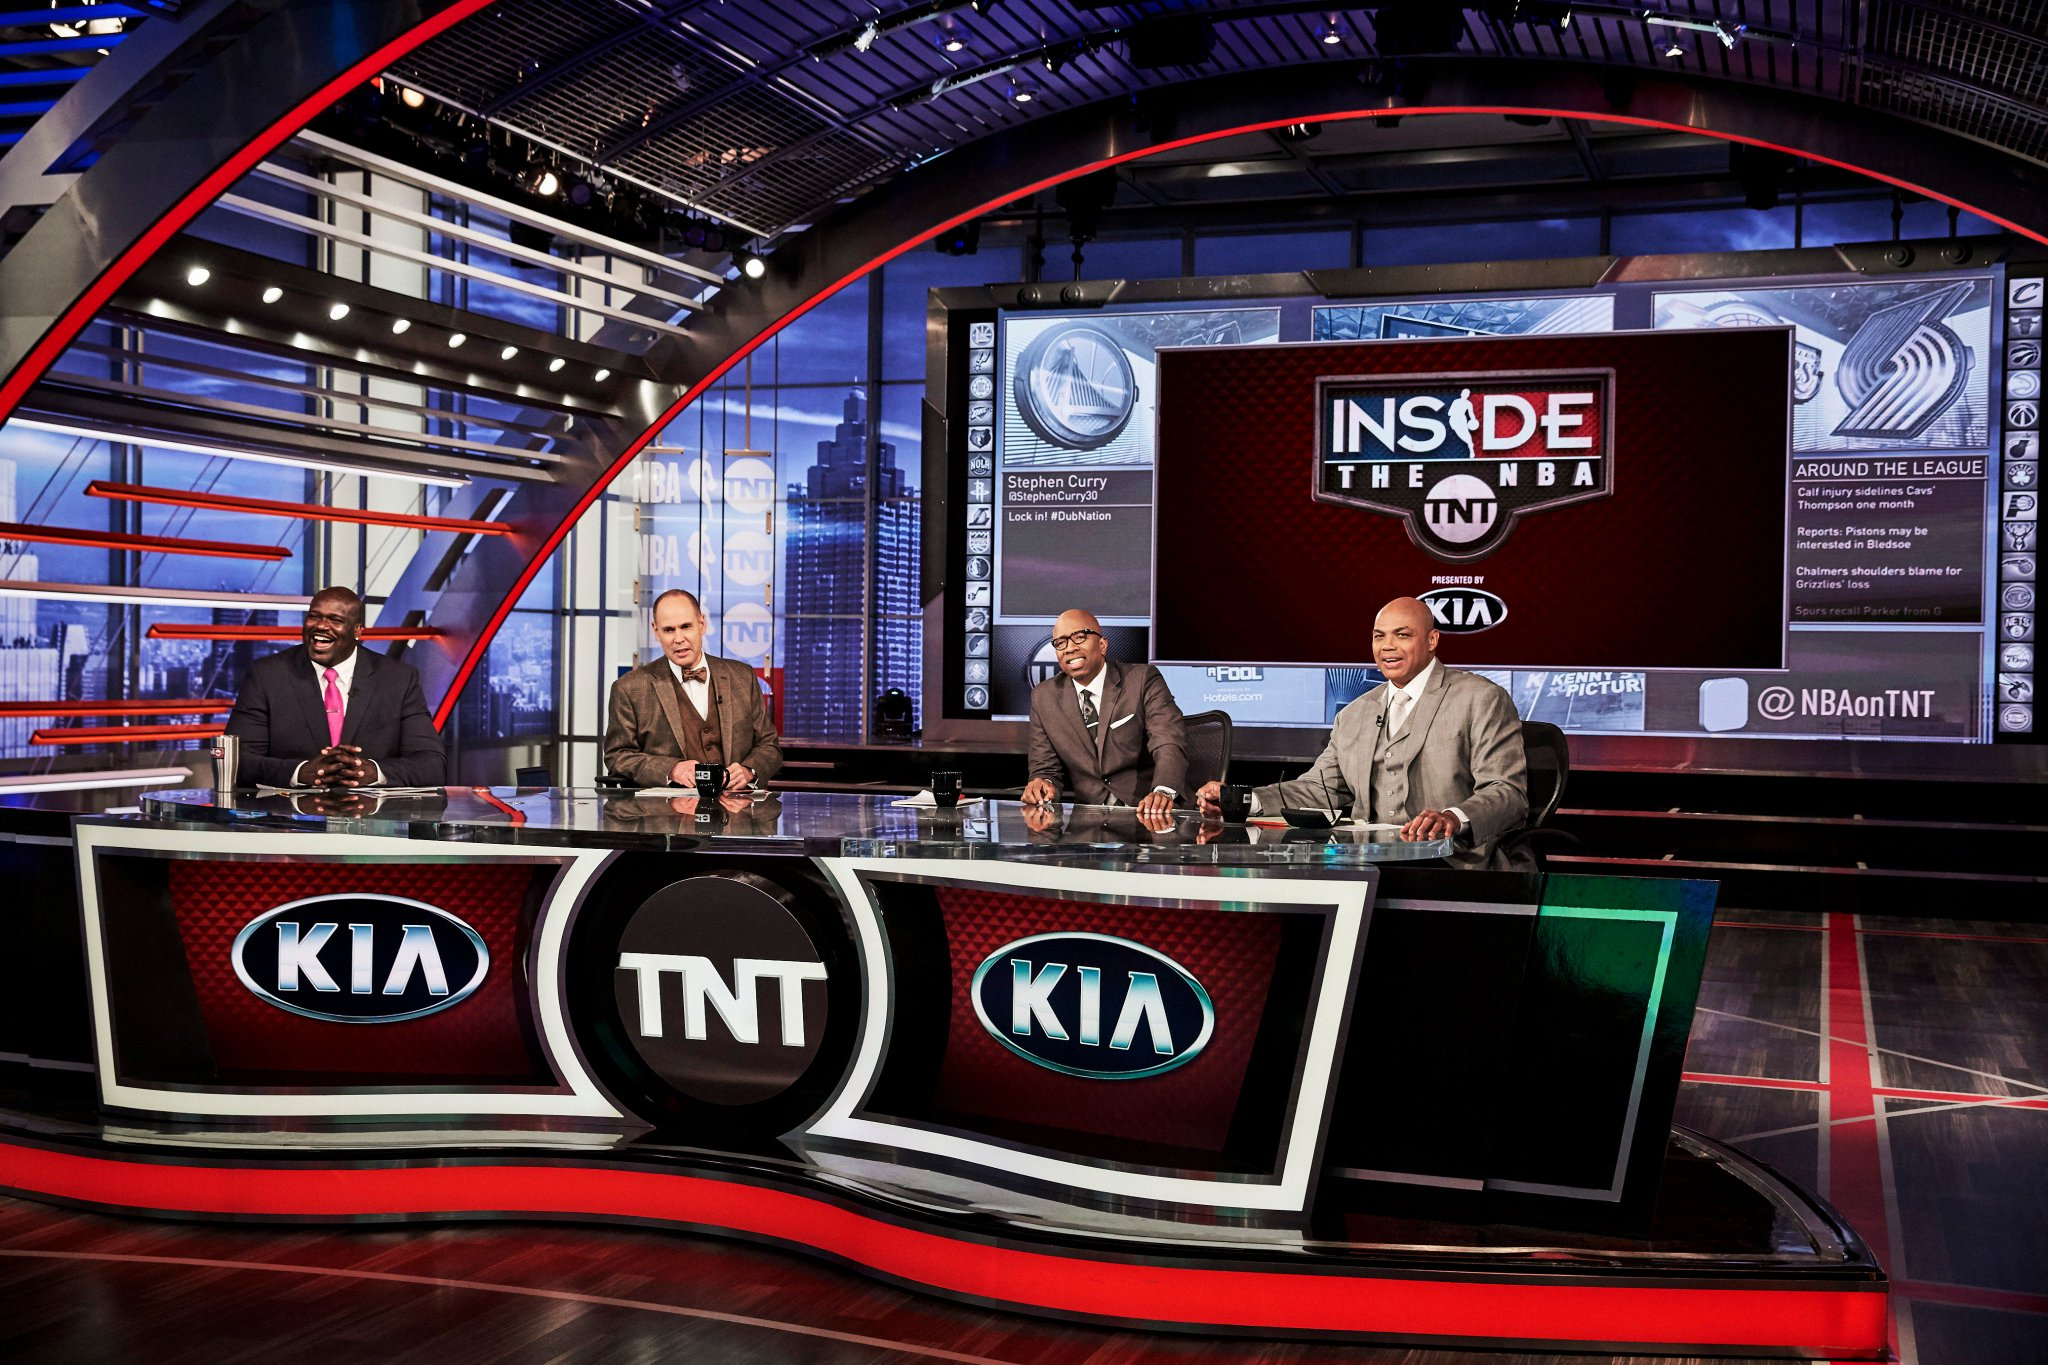 Turner Broadcasting System: Congratulations to @NBAonTNT @TurnerSportsEJ and the entire @TurnerSportsPR team for wi...